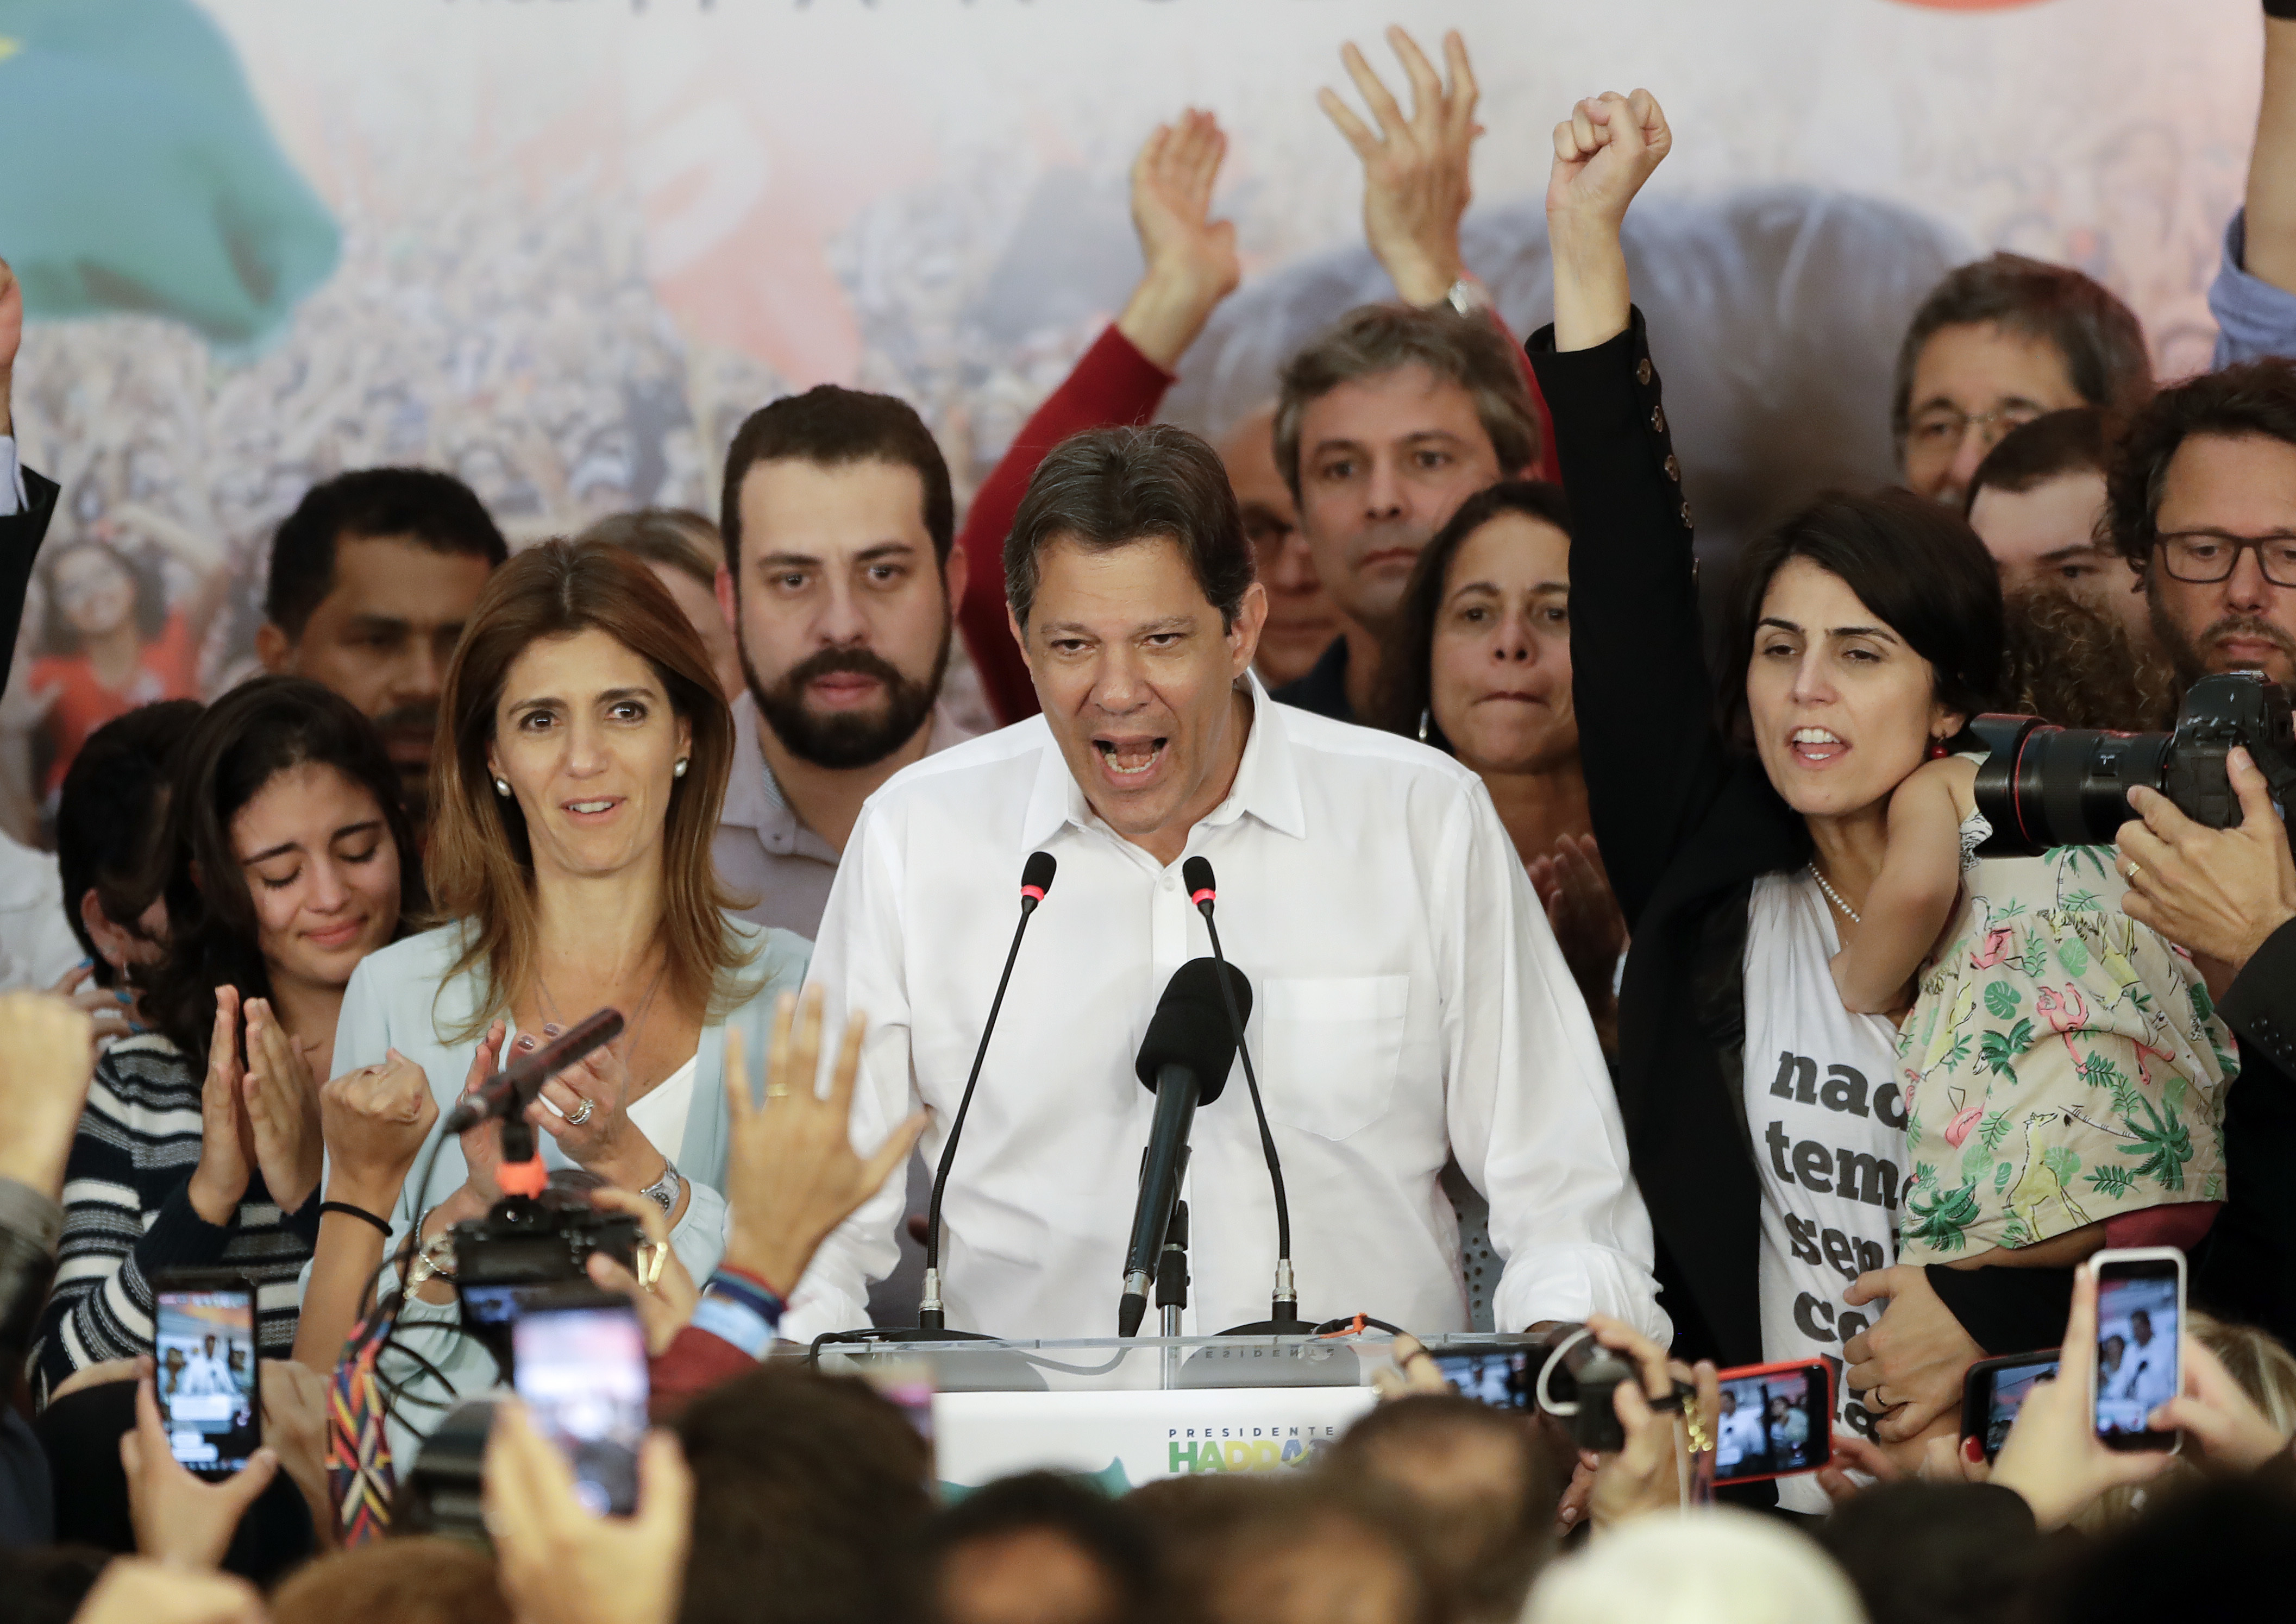 Workers' Party presidential candidate Fernando Haddad delivers his concession speech, in Sao Paulo, Brazil, Sunday, Oct. 28, 2018. Brazil's Supreme Electoral Tribunal declared far-right congressman Jair Bolsonaro the next president of Latin America...